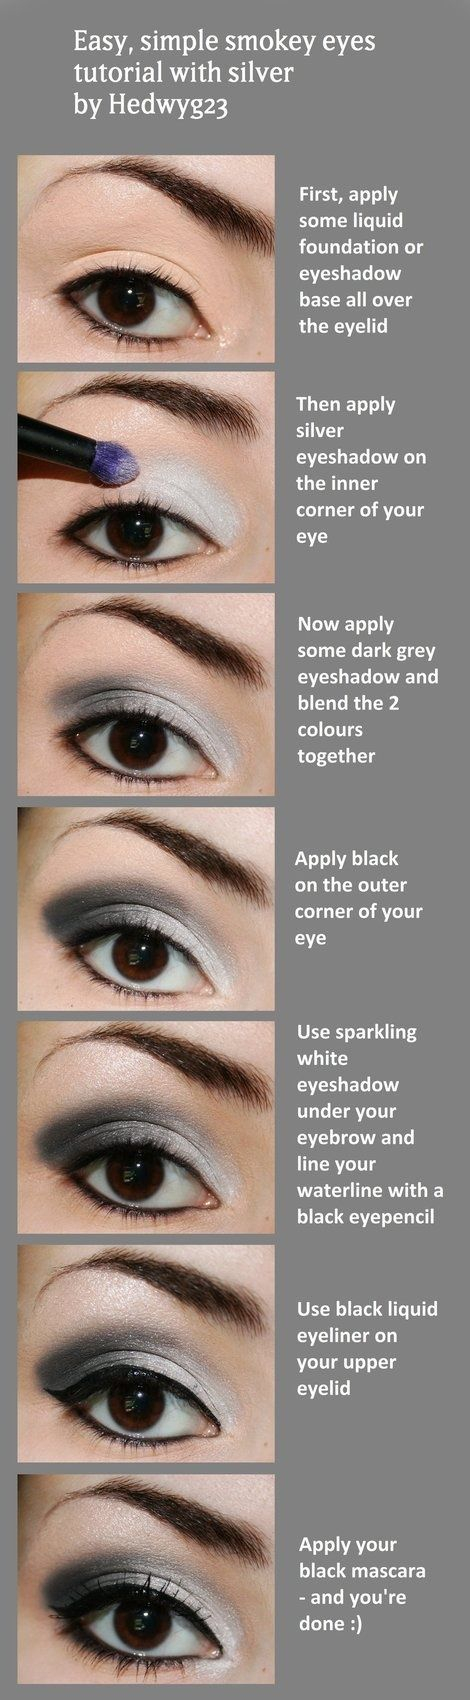 Black And Silver Eye Makeup 15 Easy And Stylish Eye Makeup Tutorials How To Wear Eye Makeup